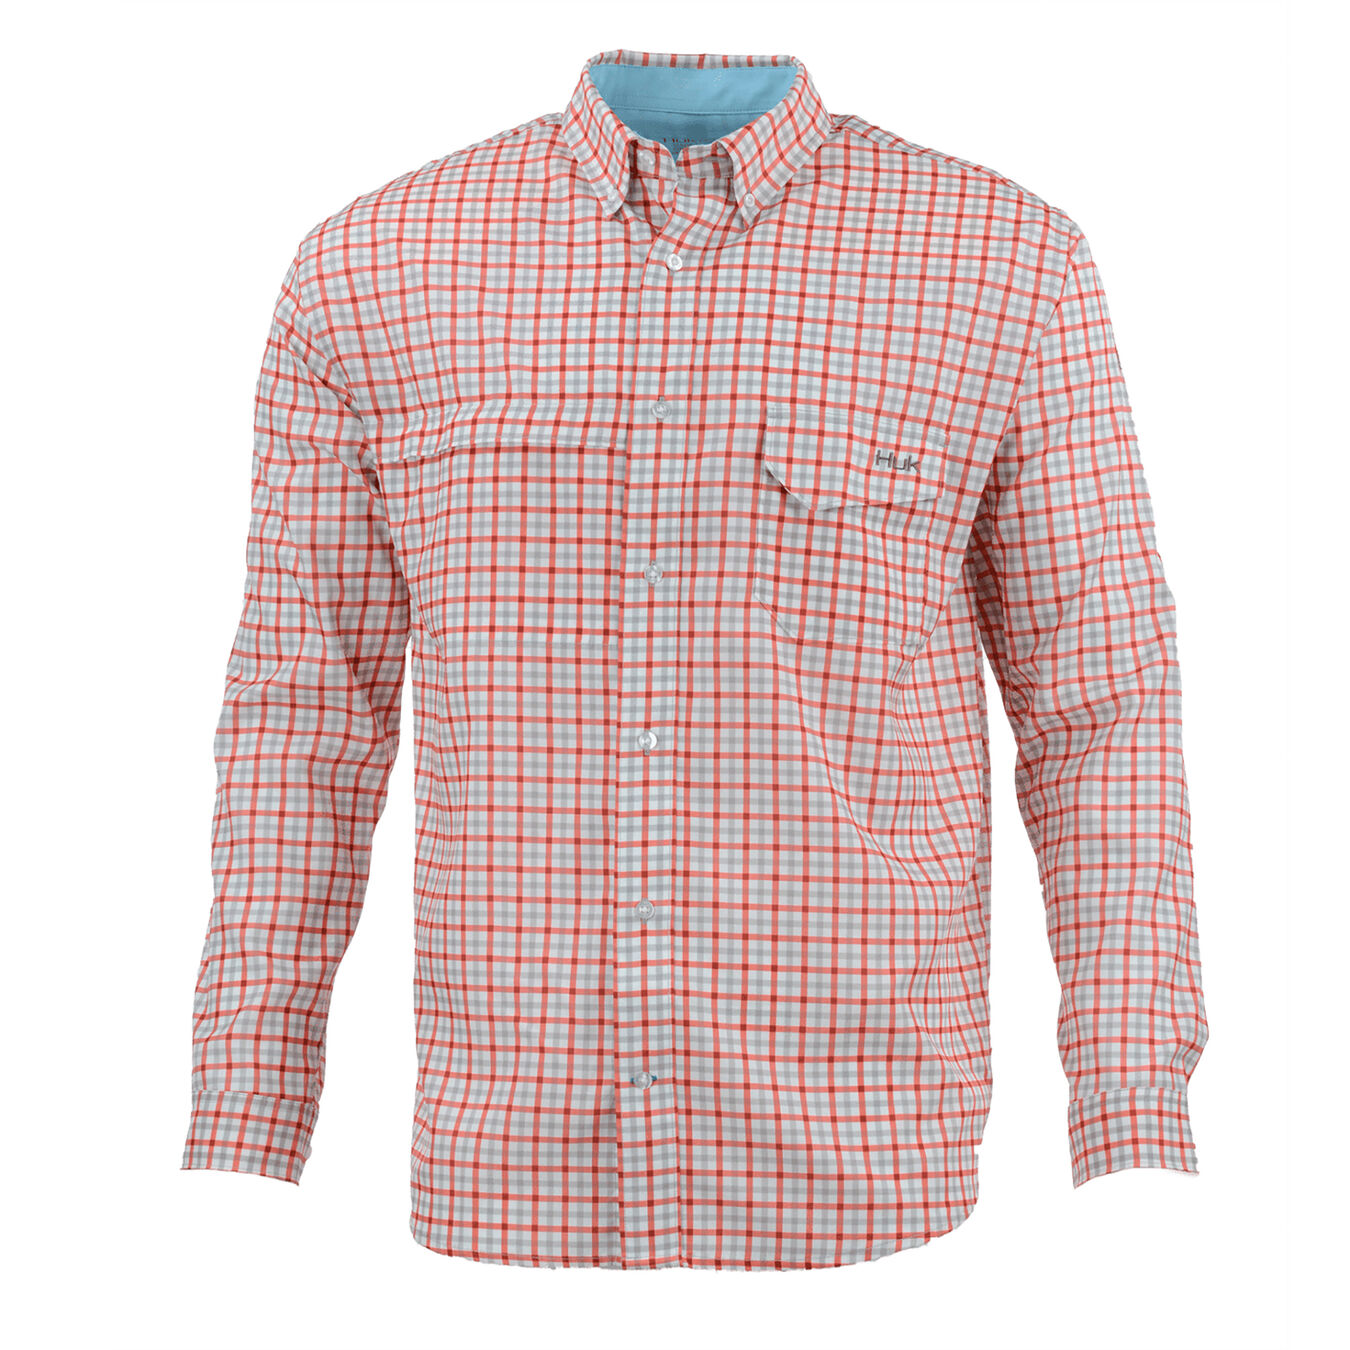 HUK Mens Button Down Casual Tide Point Woven Plaid Long Sleeve Shirt